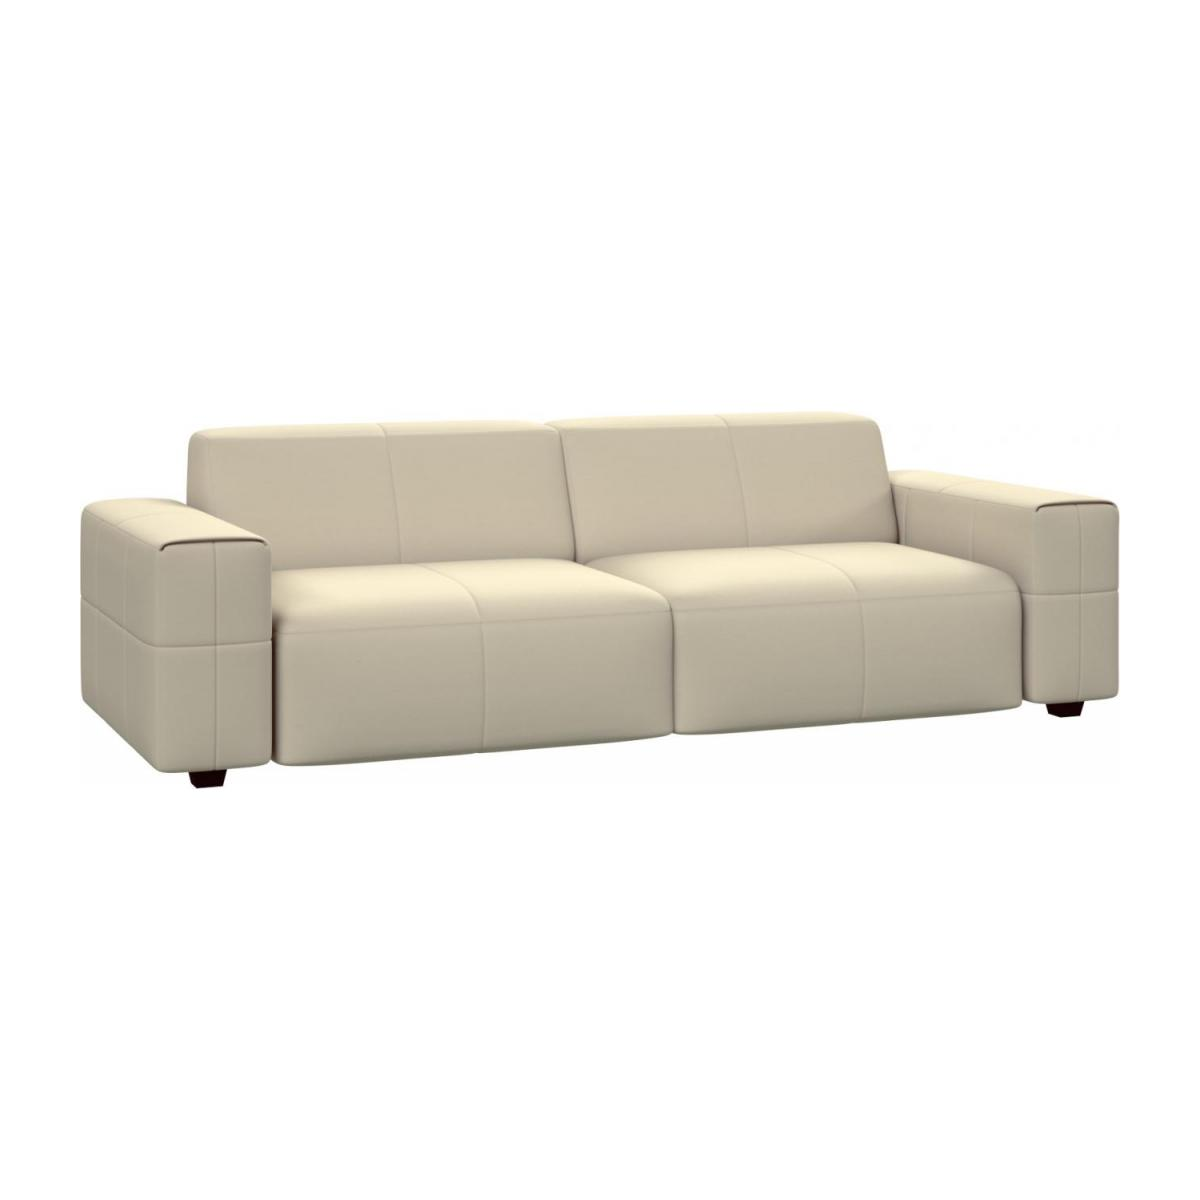 4 seater sofa in Eton veined leather, cream n°1